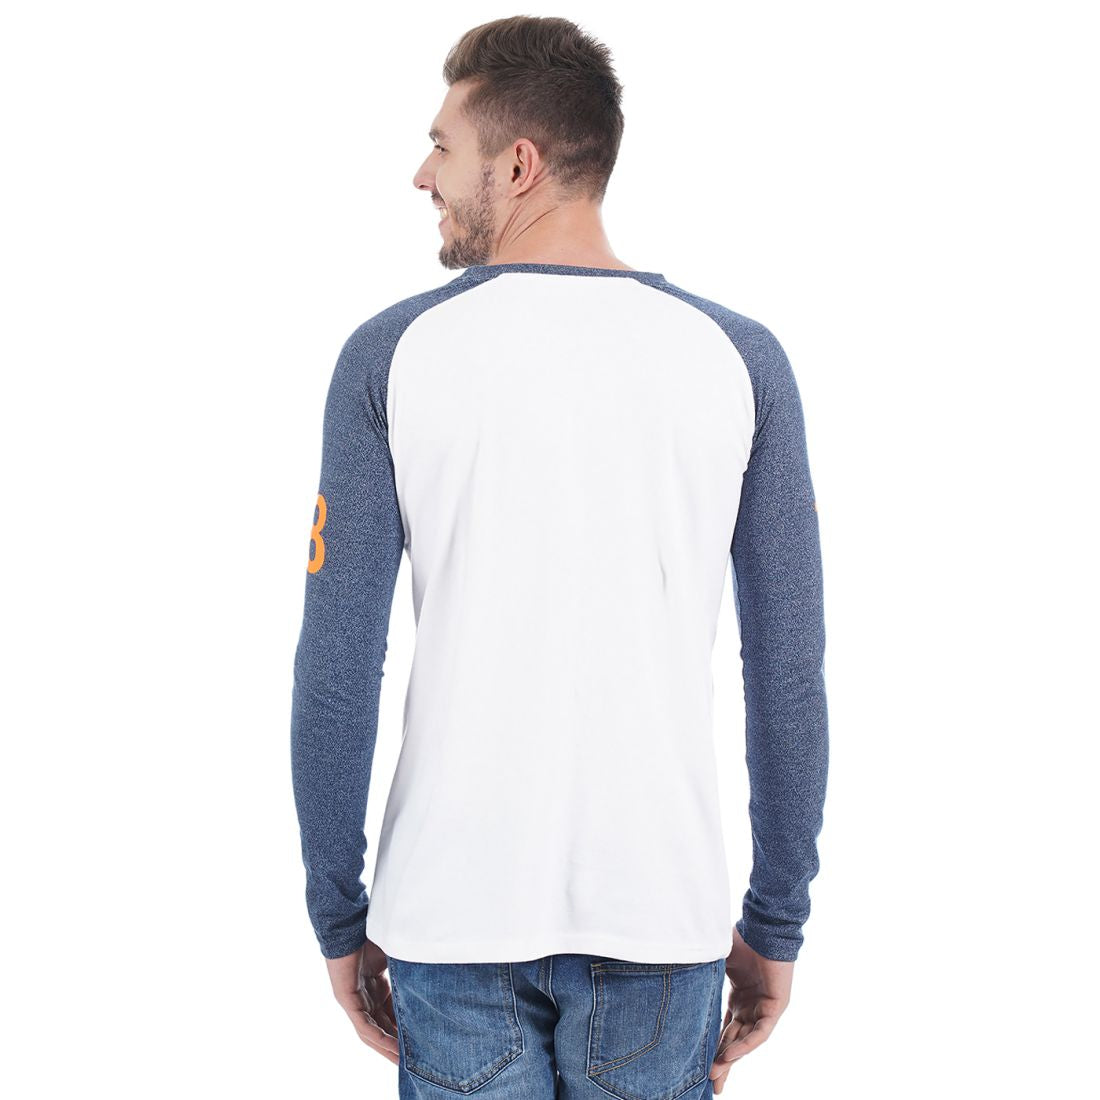 Rock Hooper Men's Full sleeve Round Neck Cotton White T-Shirt